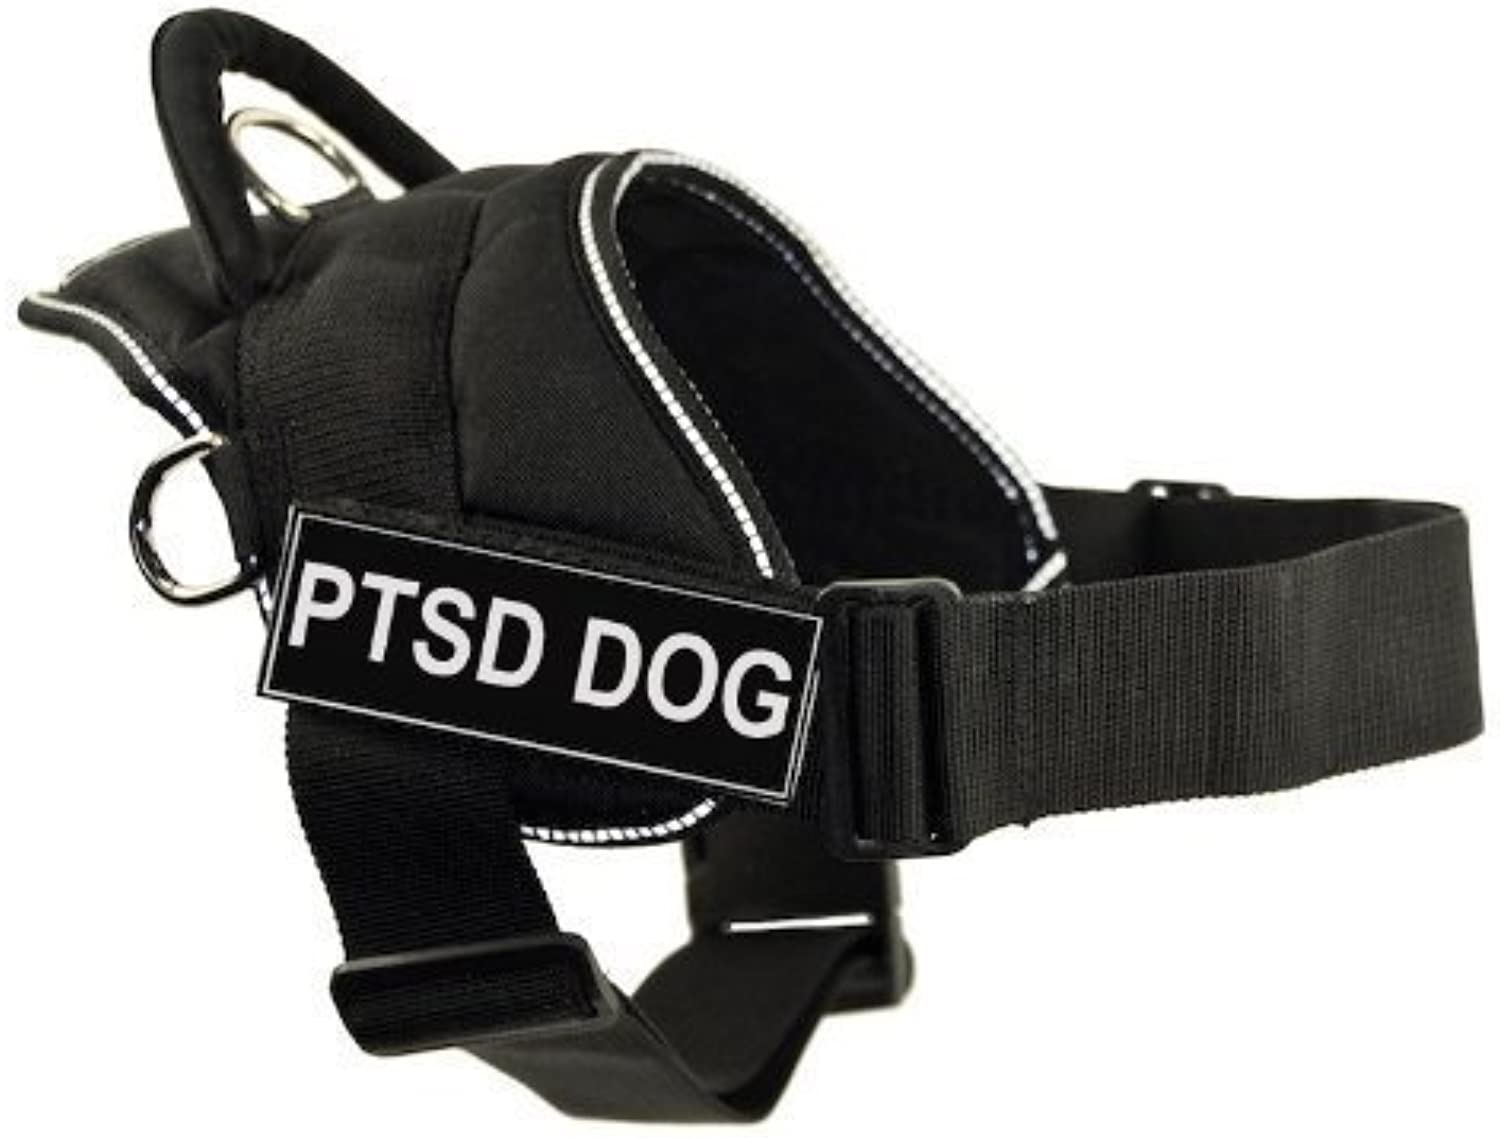 Dean & Tyler DT Fun Works Harness, PTSD Dog, Black With Reflective Trim, Large  Fits Girth Size  32Inch to 42Inch